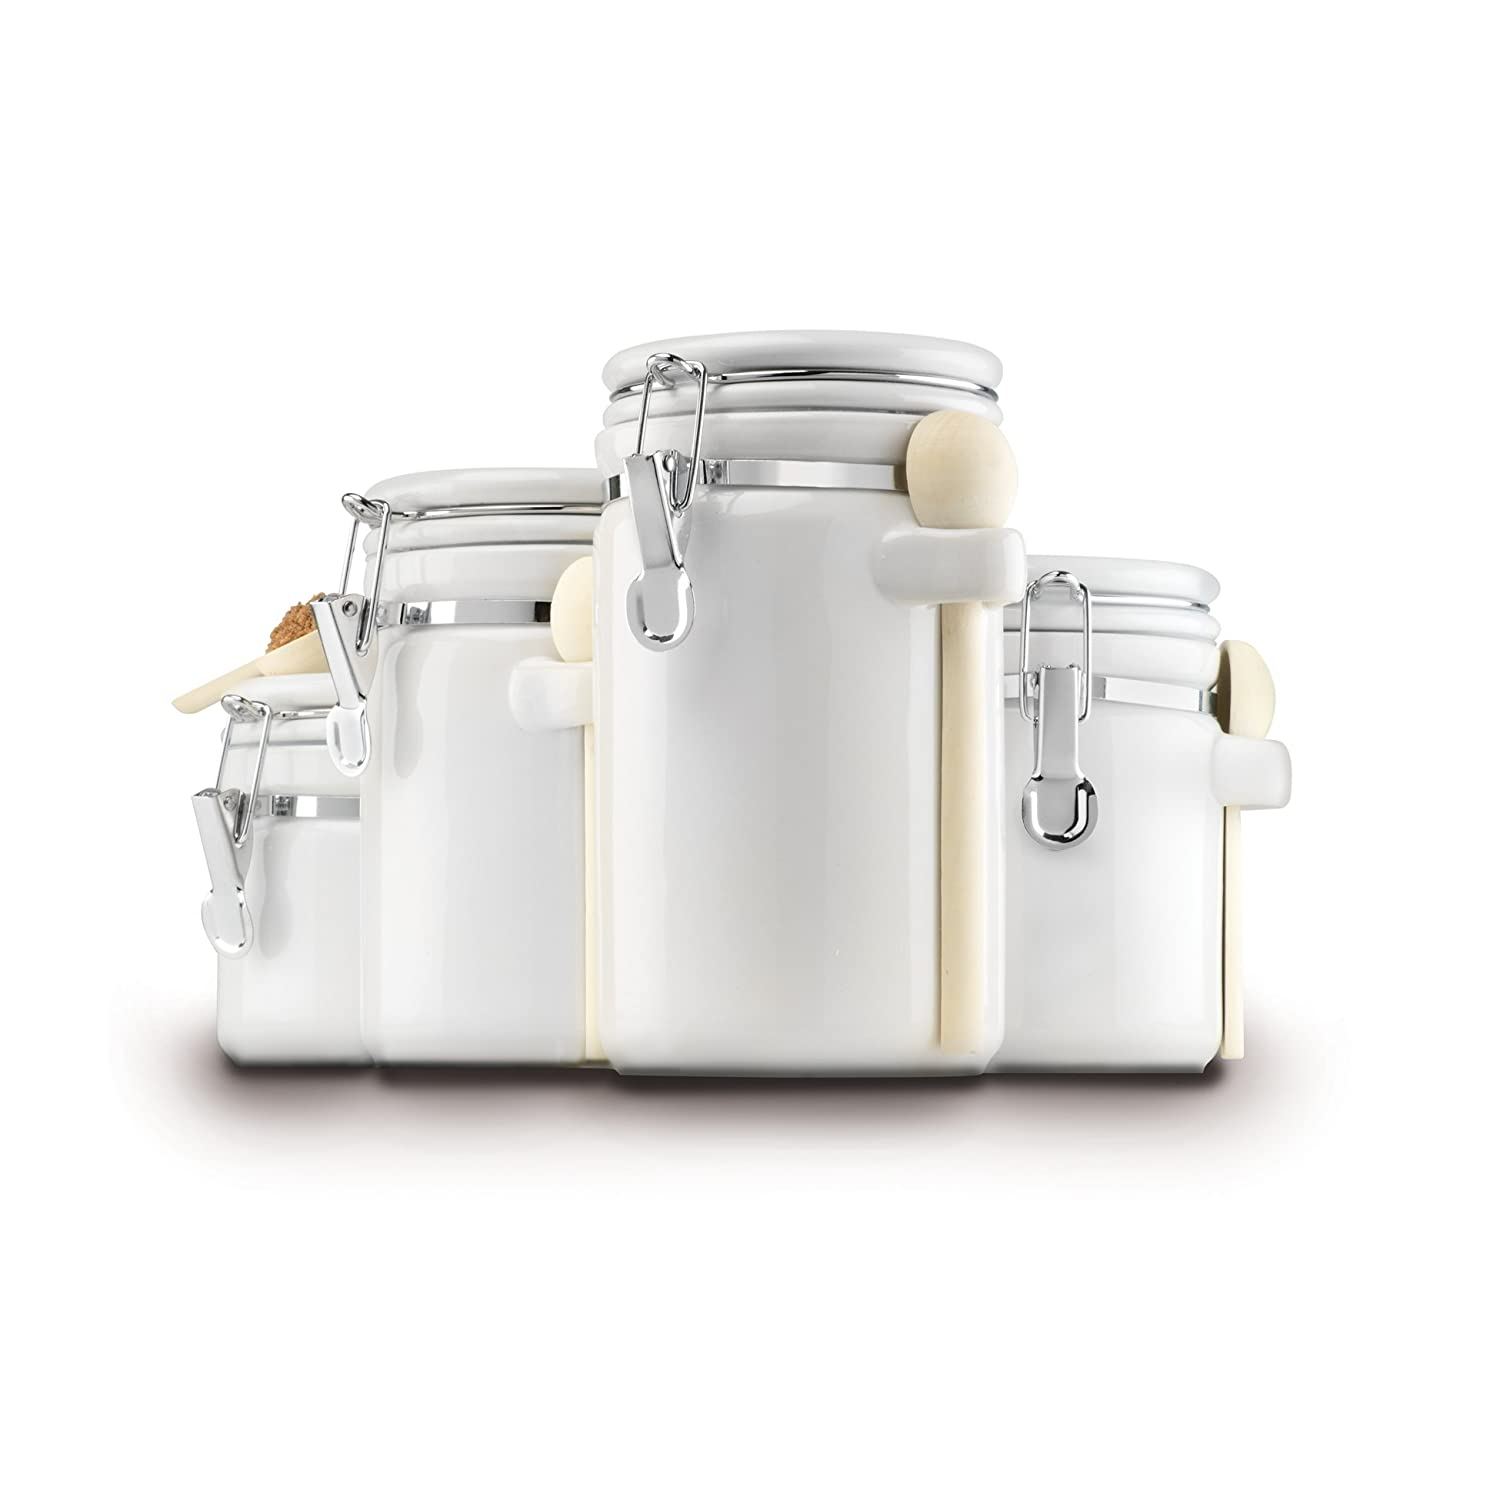 4 piece ceramic kitchen countertop canister container set